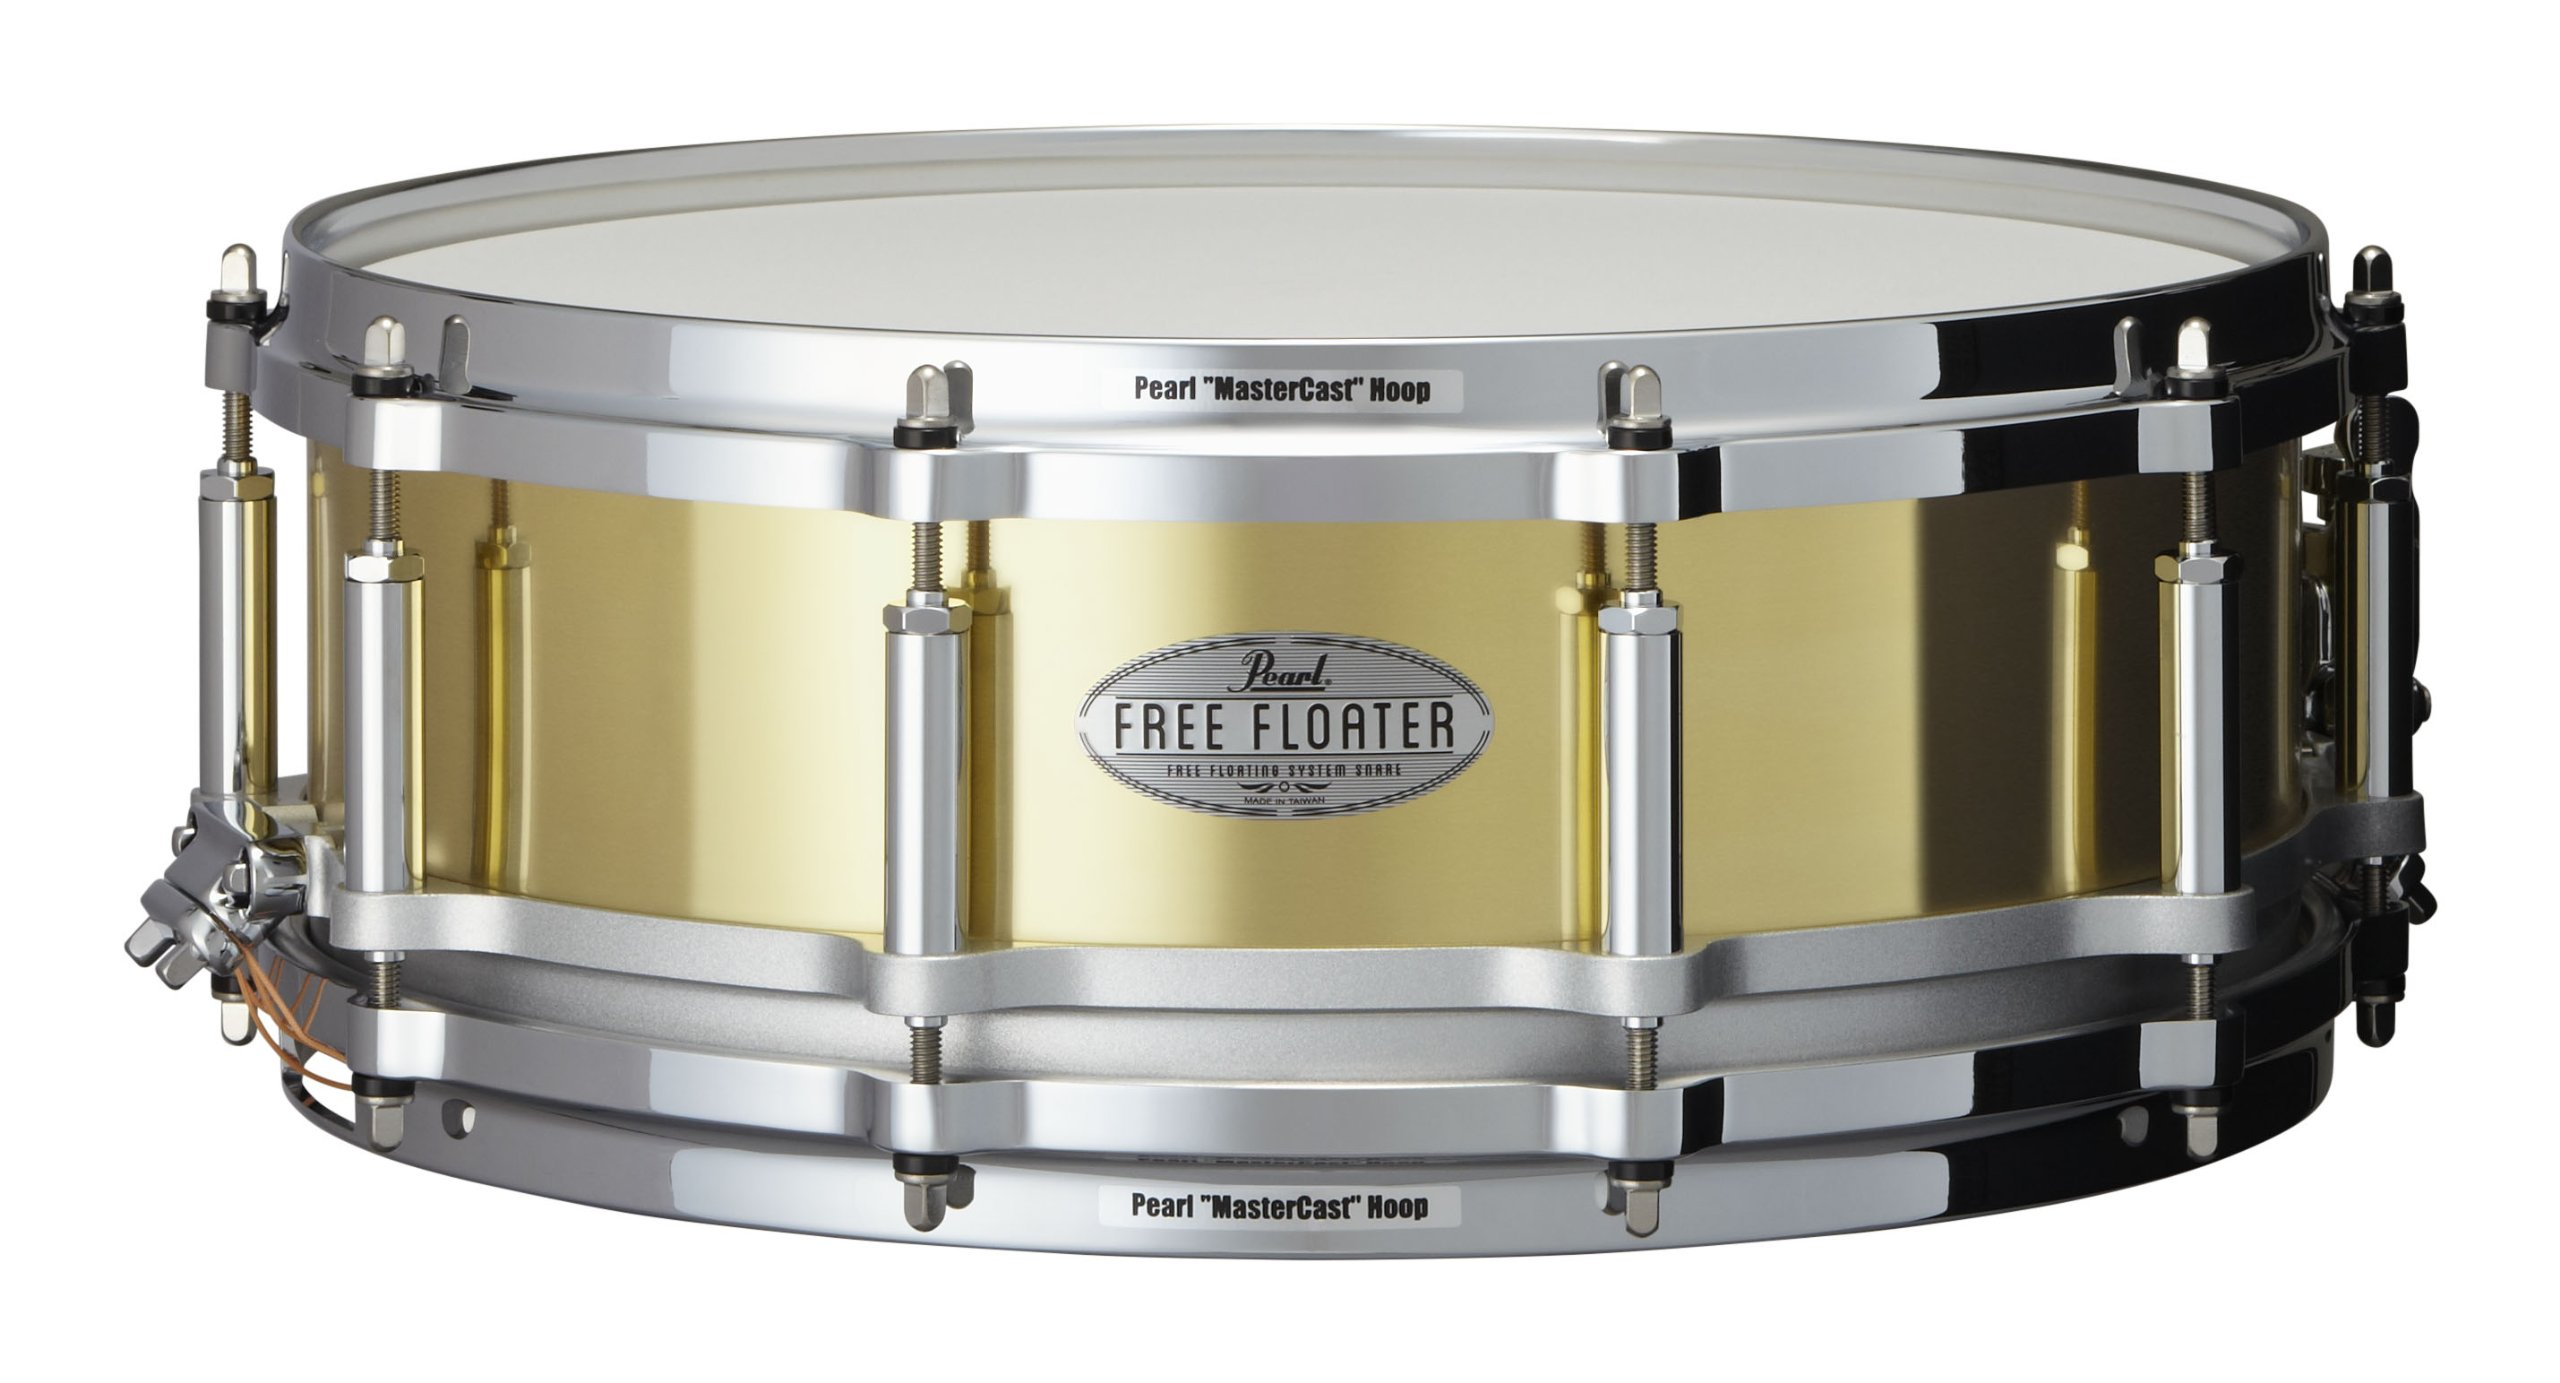 Pearl FTBR1450 14 x 5 Inches Free Floater Snare Drum - Brass